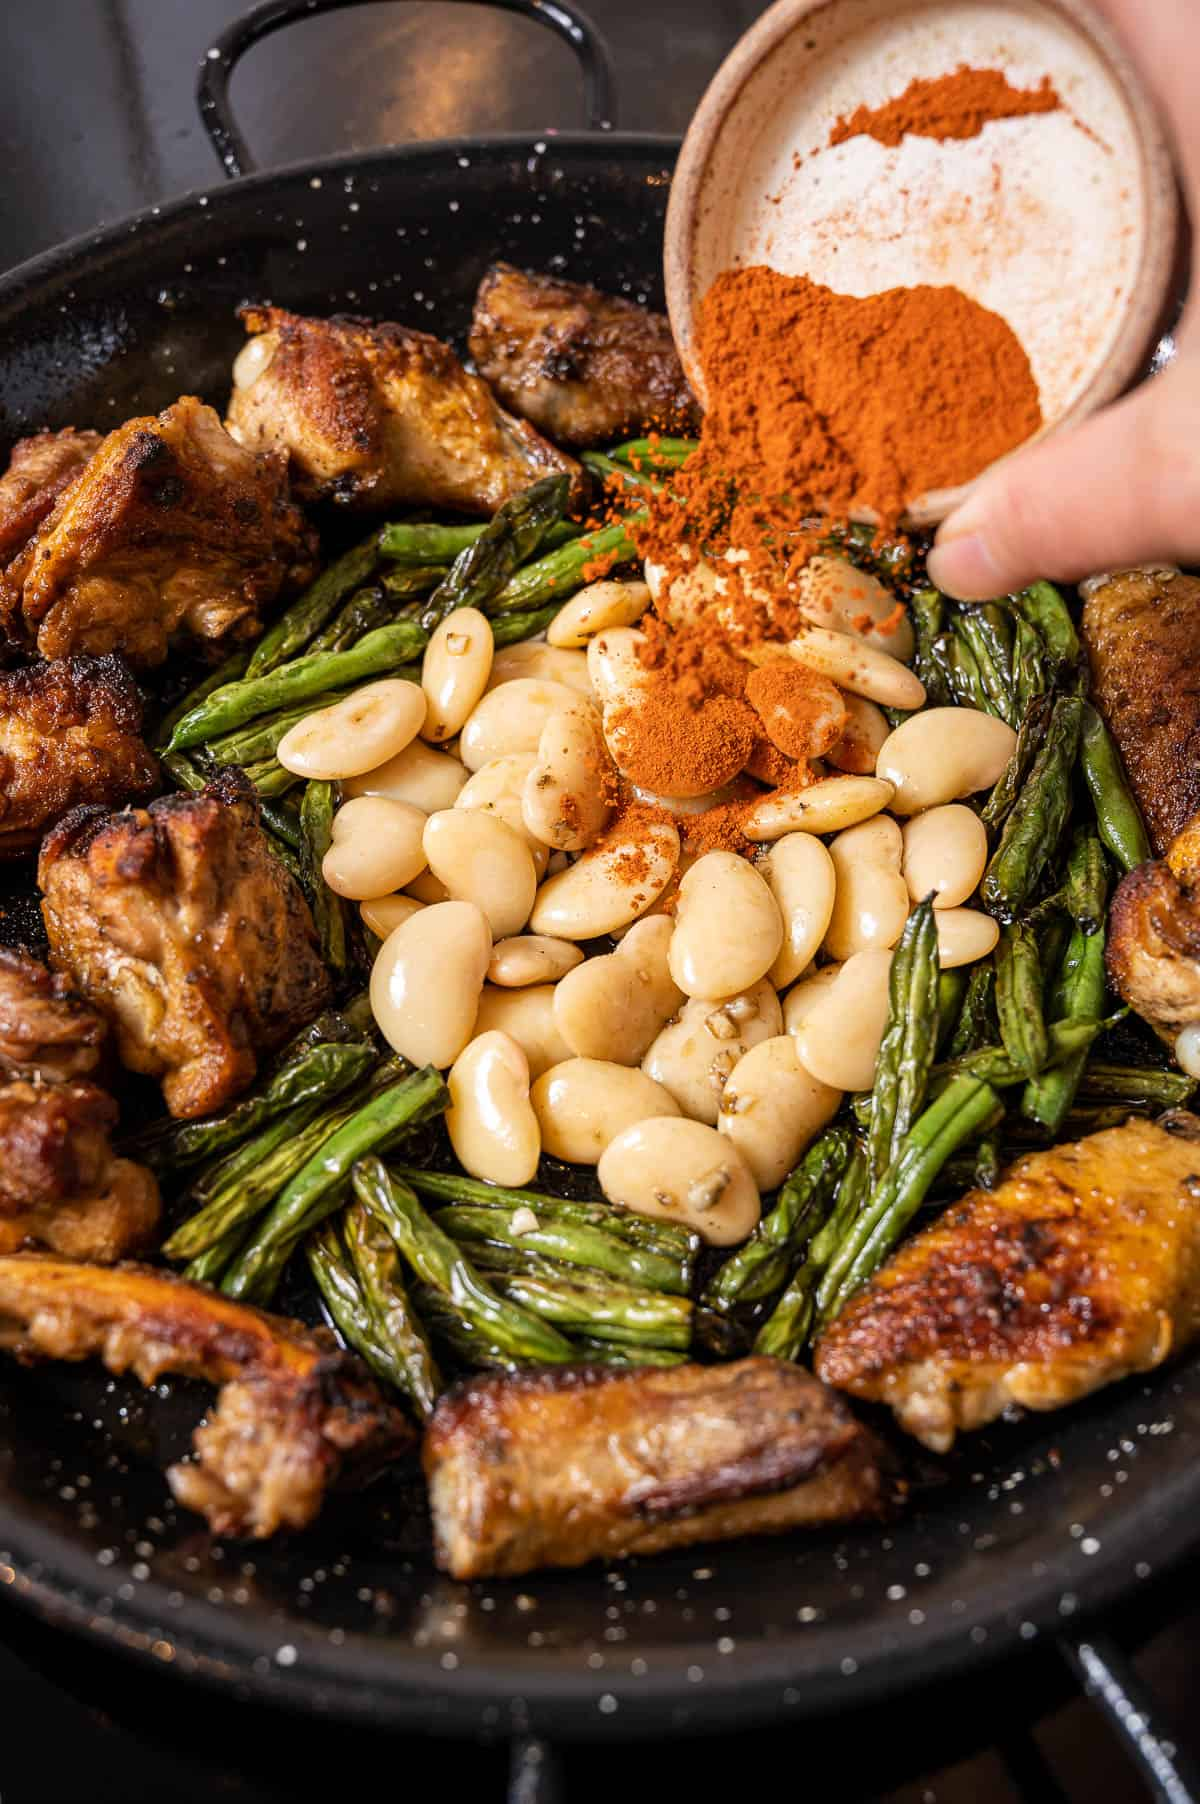 Close up of a person's hand pouring paprika into a pot of meat, veggies, and beans.